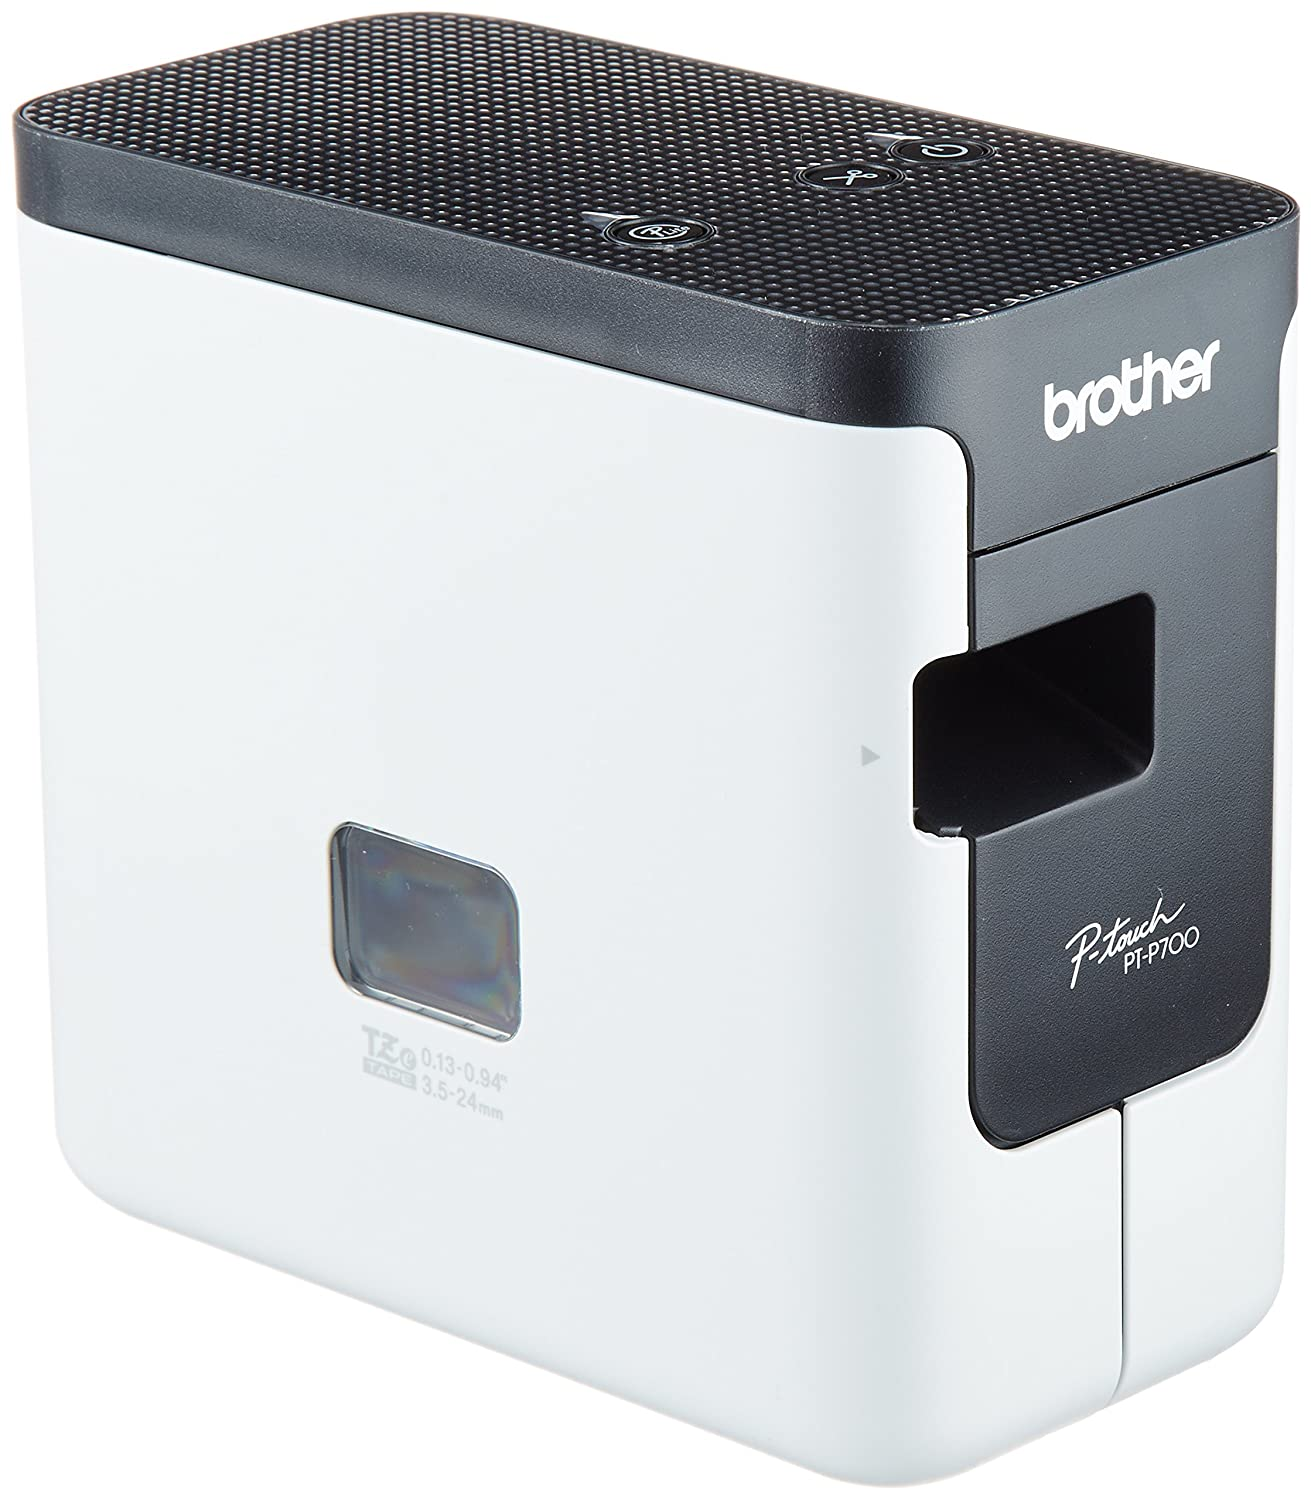 BROTHER P700 DRIVER FOR WINDOWS MAC